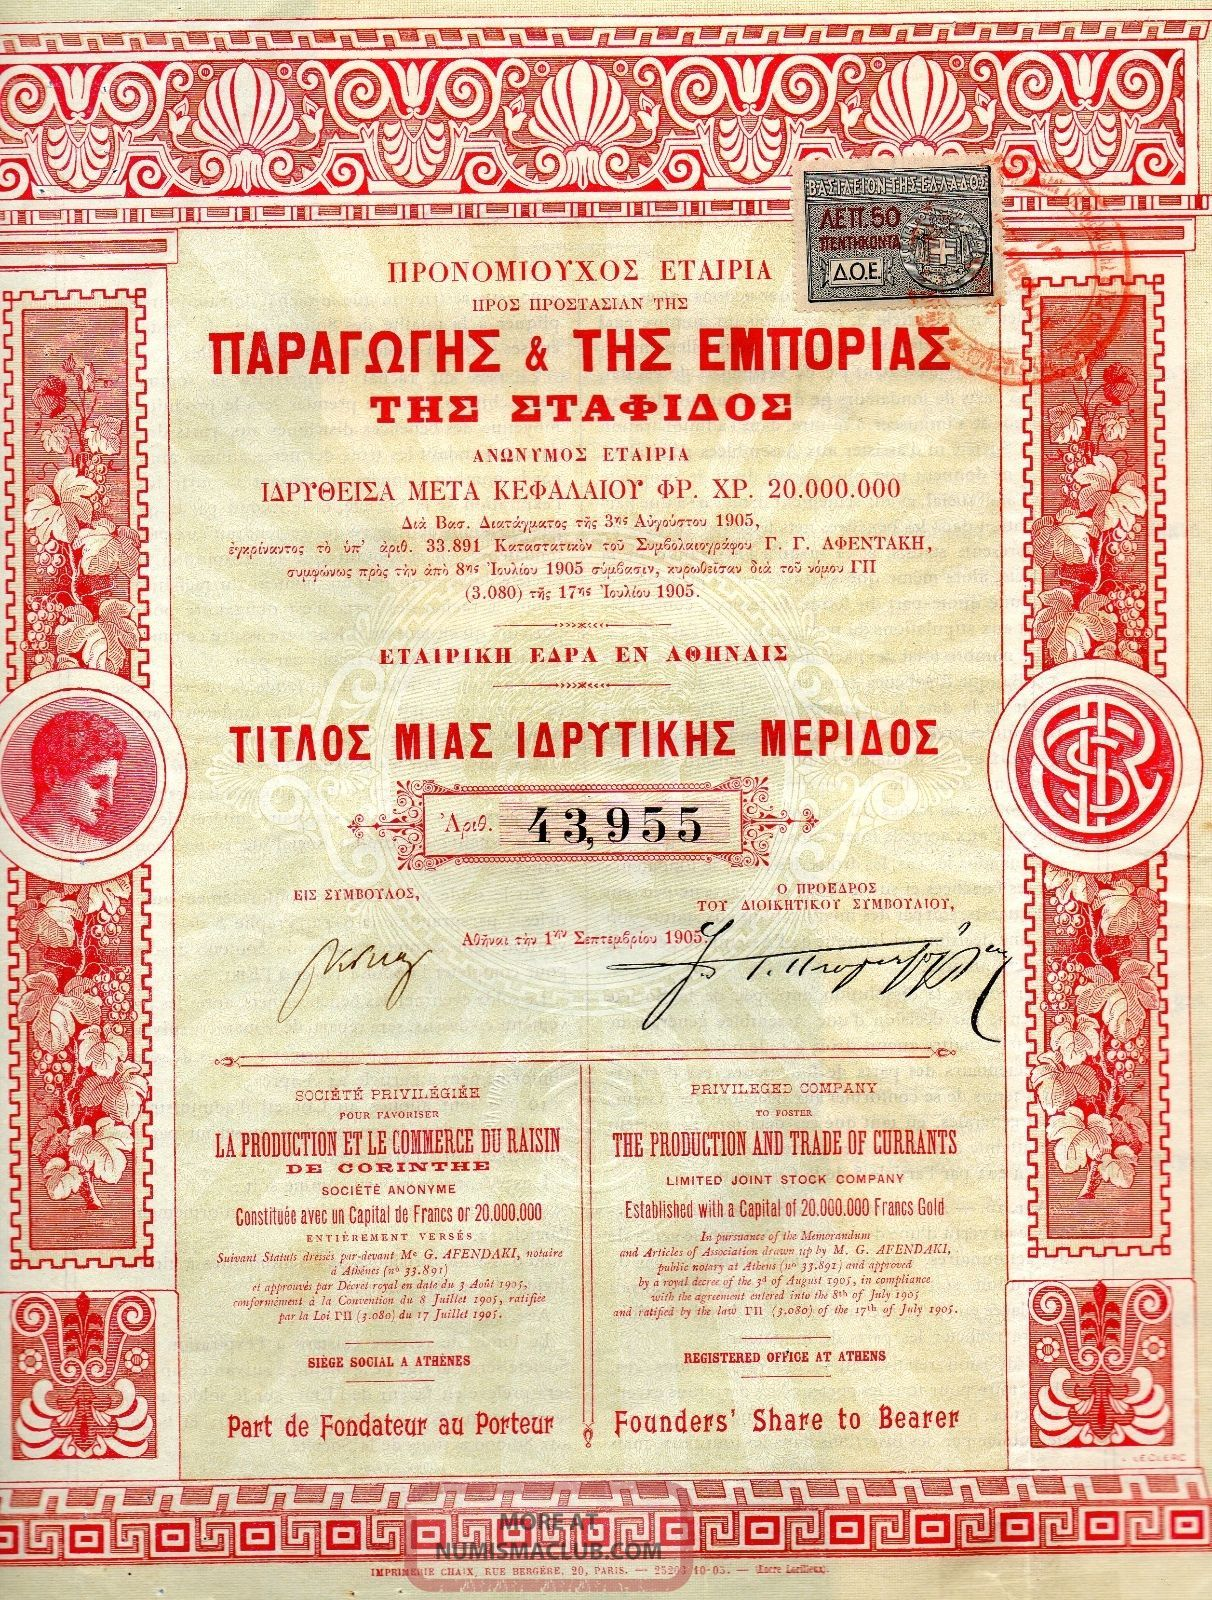 1905 Greece Greek Bond Share Company About Production Of Currant Lithograph Stocks & Bonds, Scripophily photo